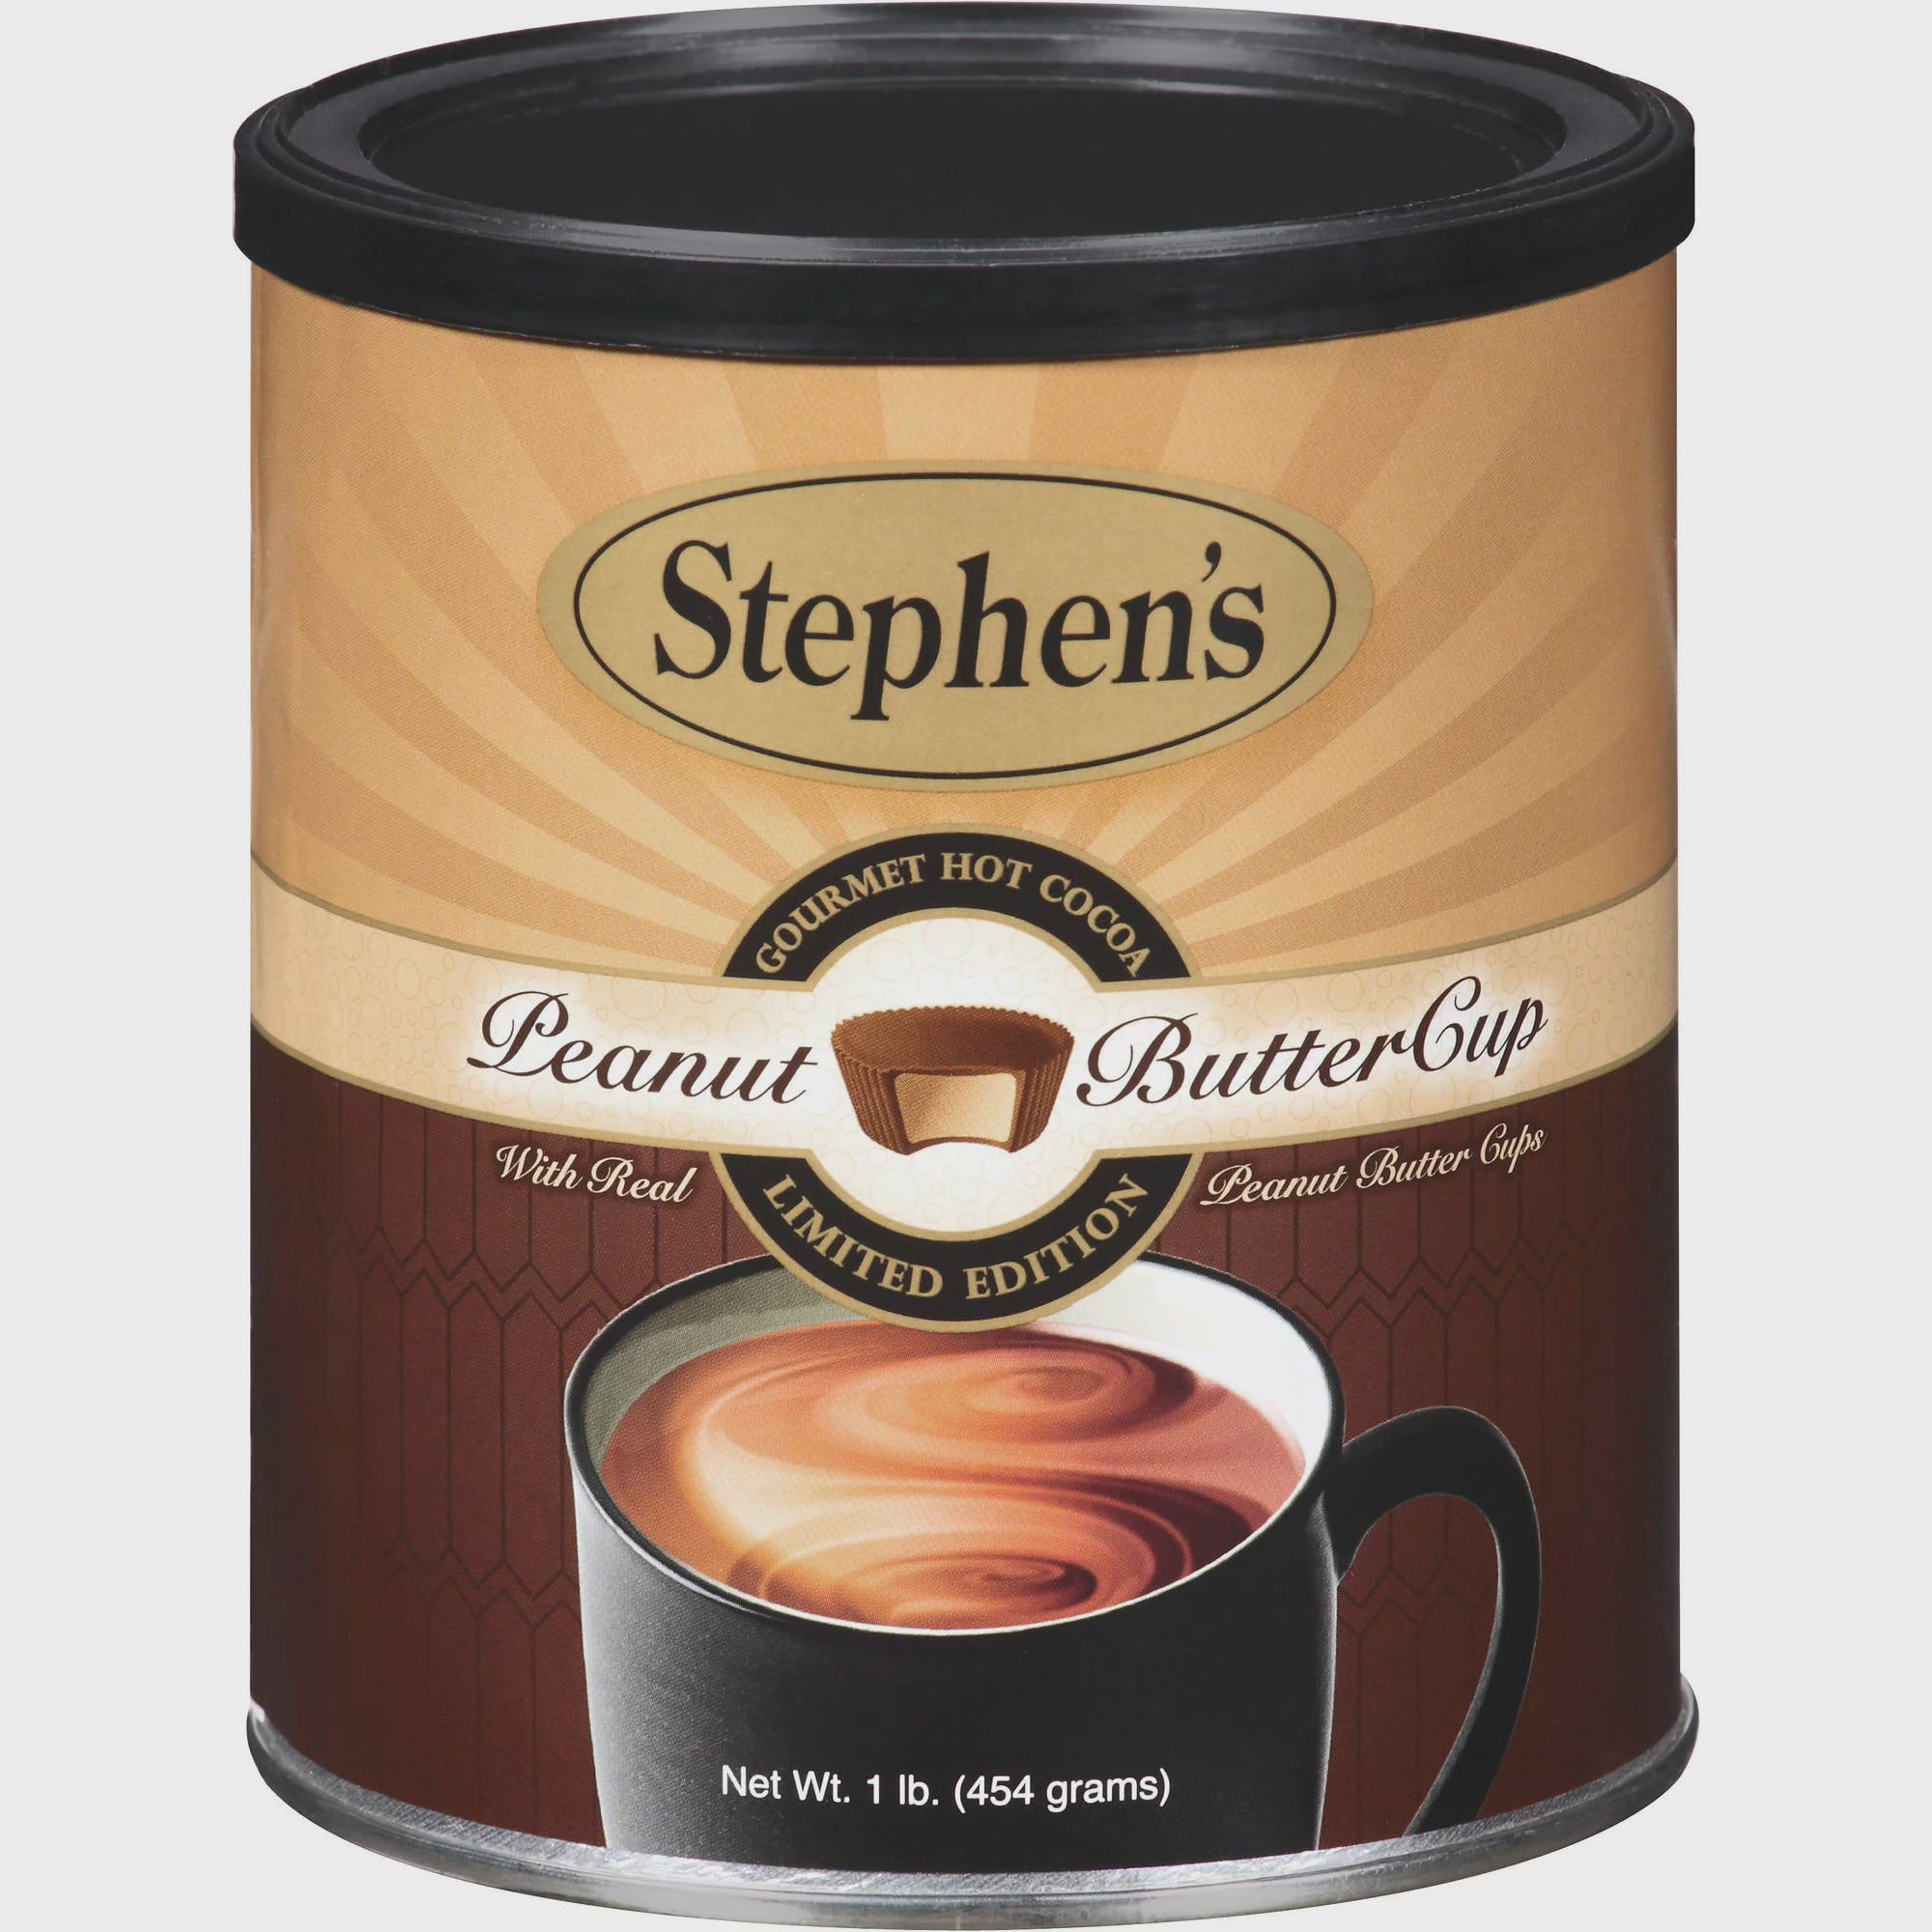 Stephen's Peanut Butter Cup Gourmet Hot Cocoa, 1 lb by Indulgent Foods